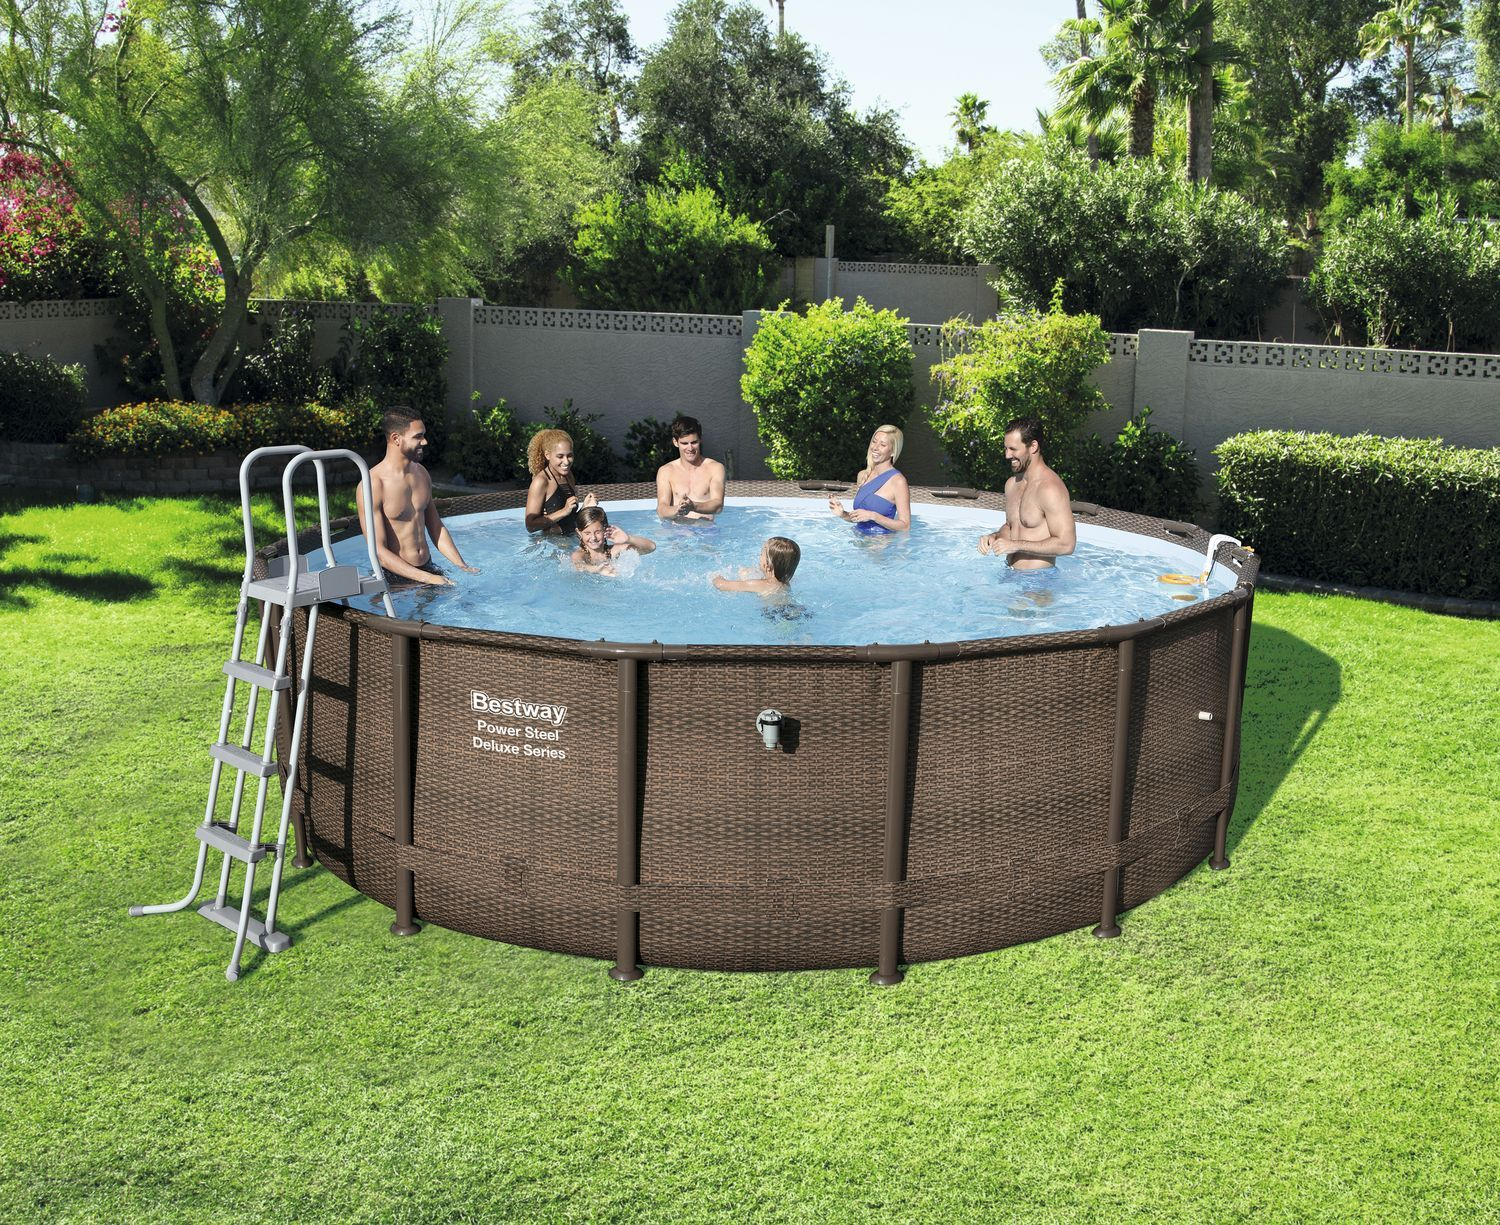 Pool Garten Zubehör Power Steel Deluxe Series Pool Set Ø488x122cm Stahlrahmenpool Set